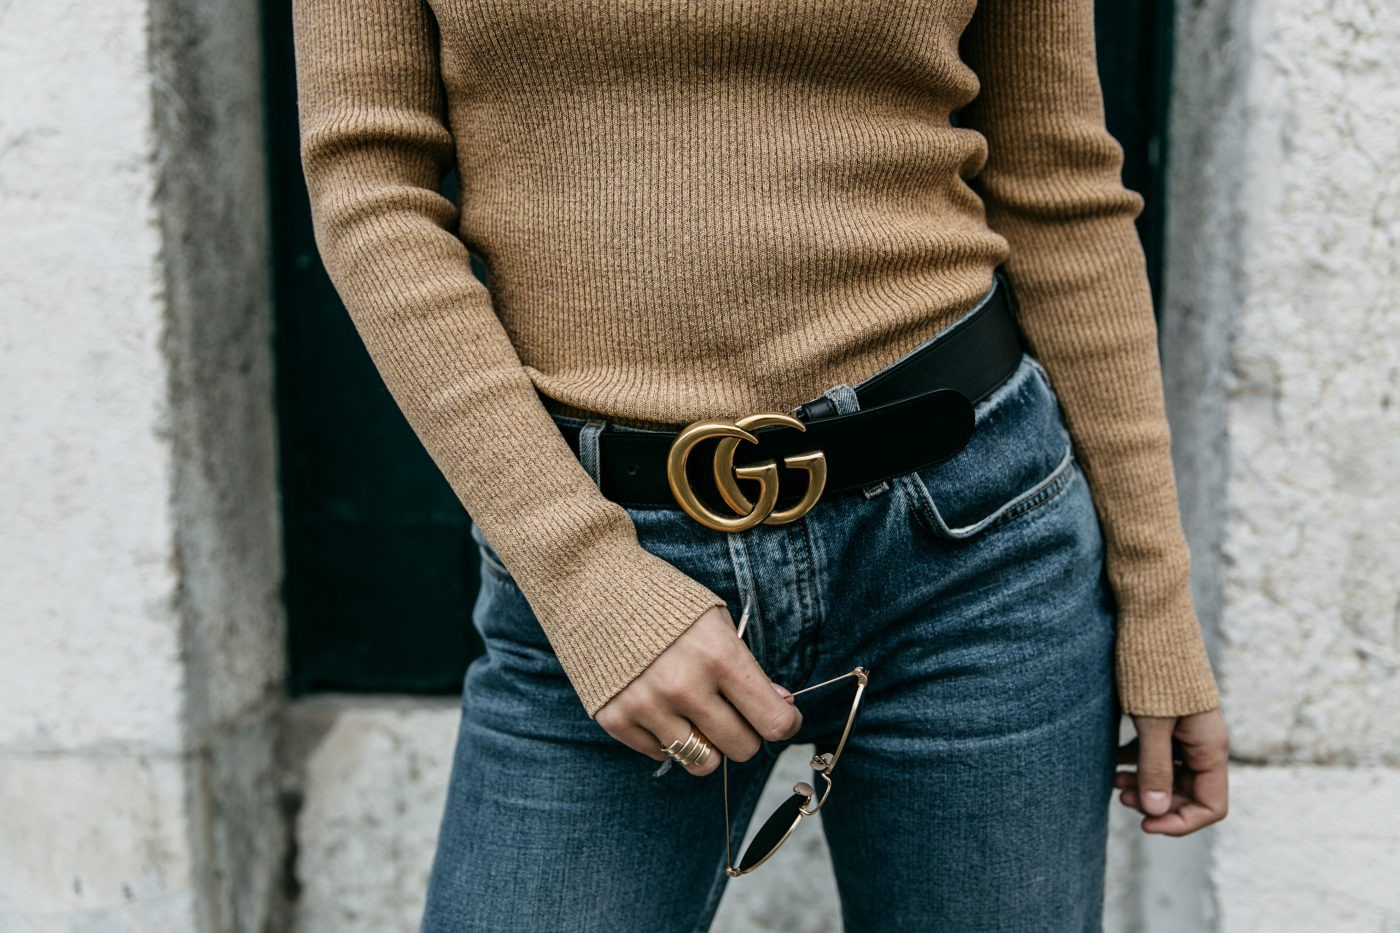 Metallic_Sweater-Cameo_The_Label-Melie-Lisboa-Denim-Topshop-Gucci_Belt-Saint_Laurent_Sneakers-Outfit-Street_Style-69-1400x933 (2).jpg